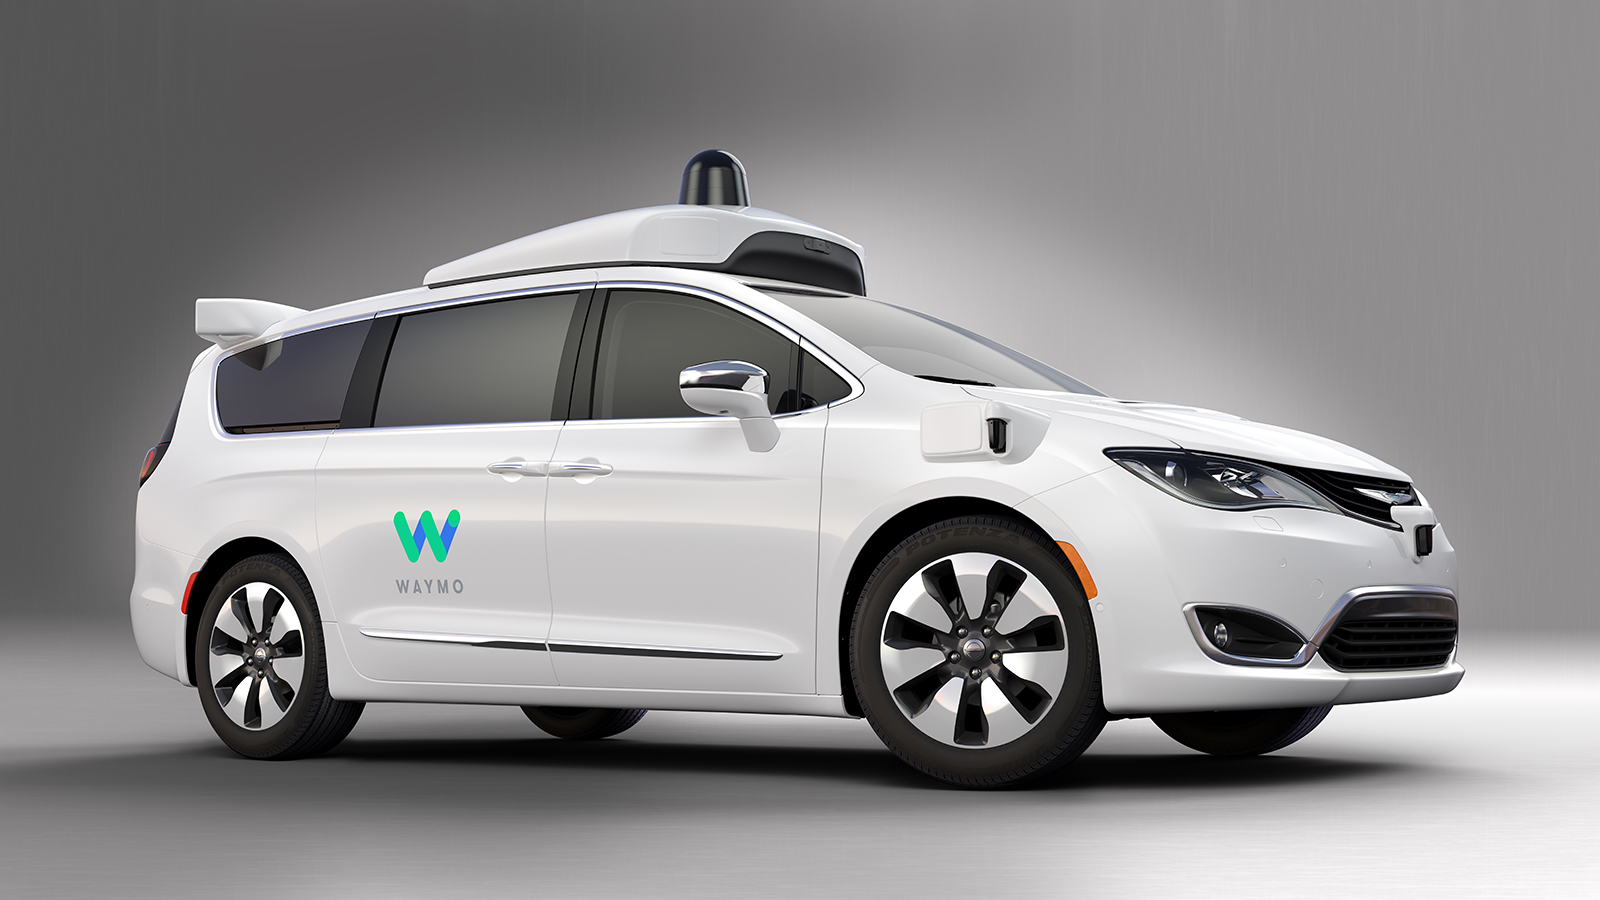 Fiat Chrysler To Sell Thousands Of Self-Driving Minivans To Waymo